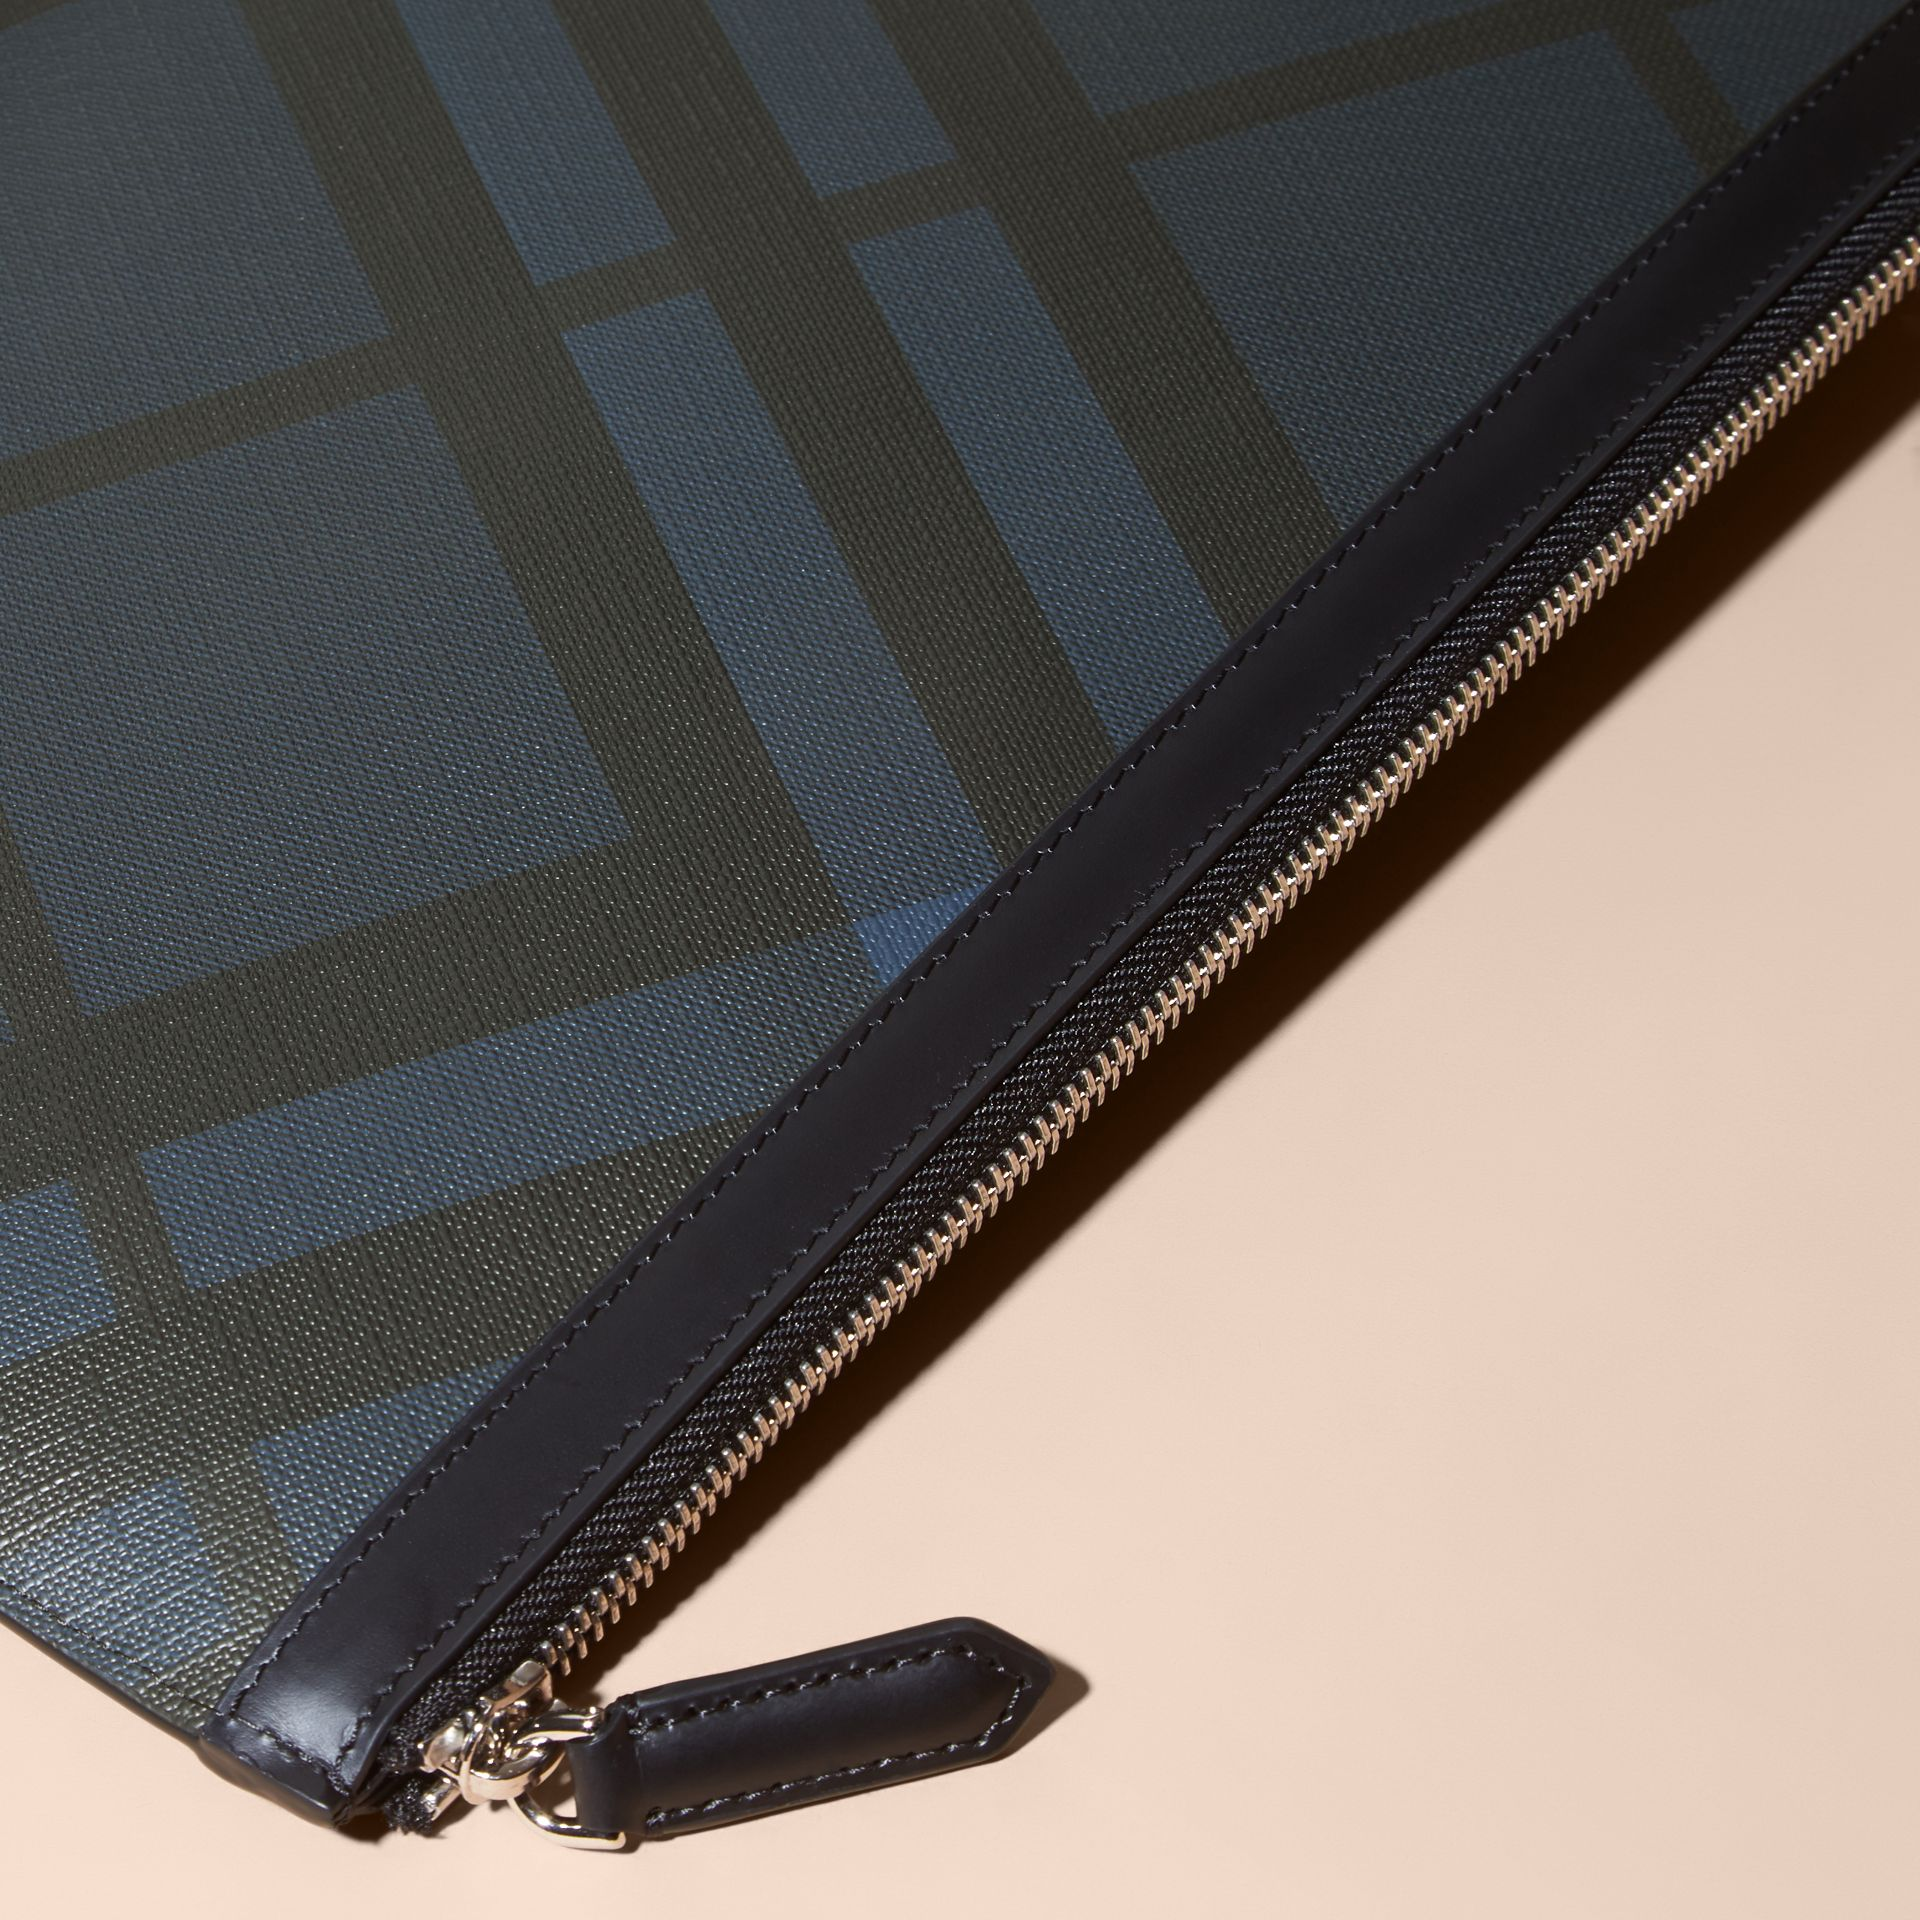 Zipped London Check Pouch Navy/black - gallery image 3